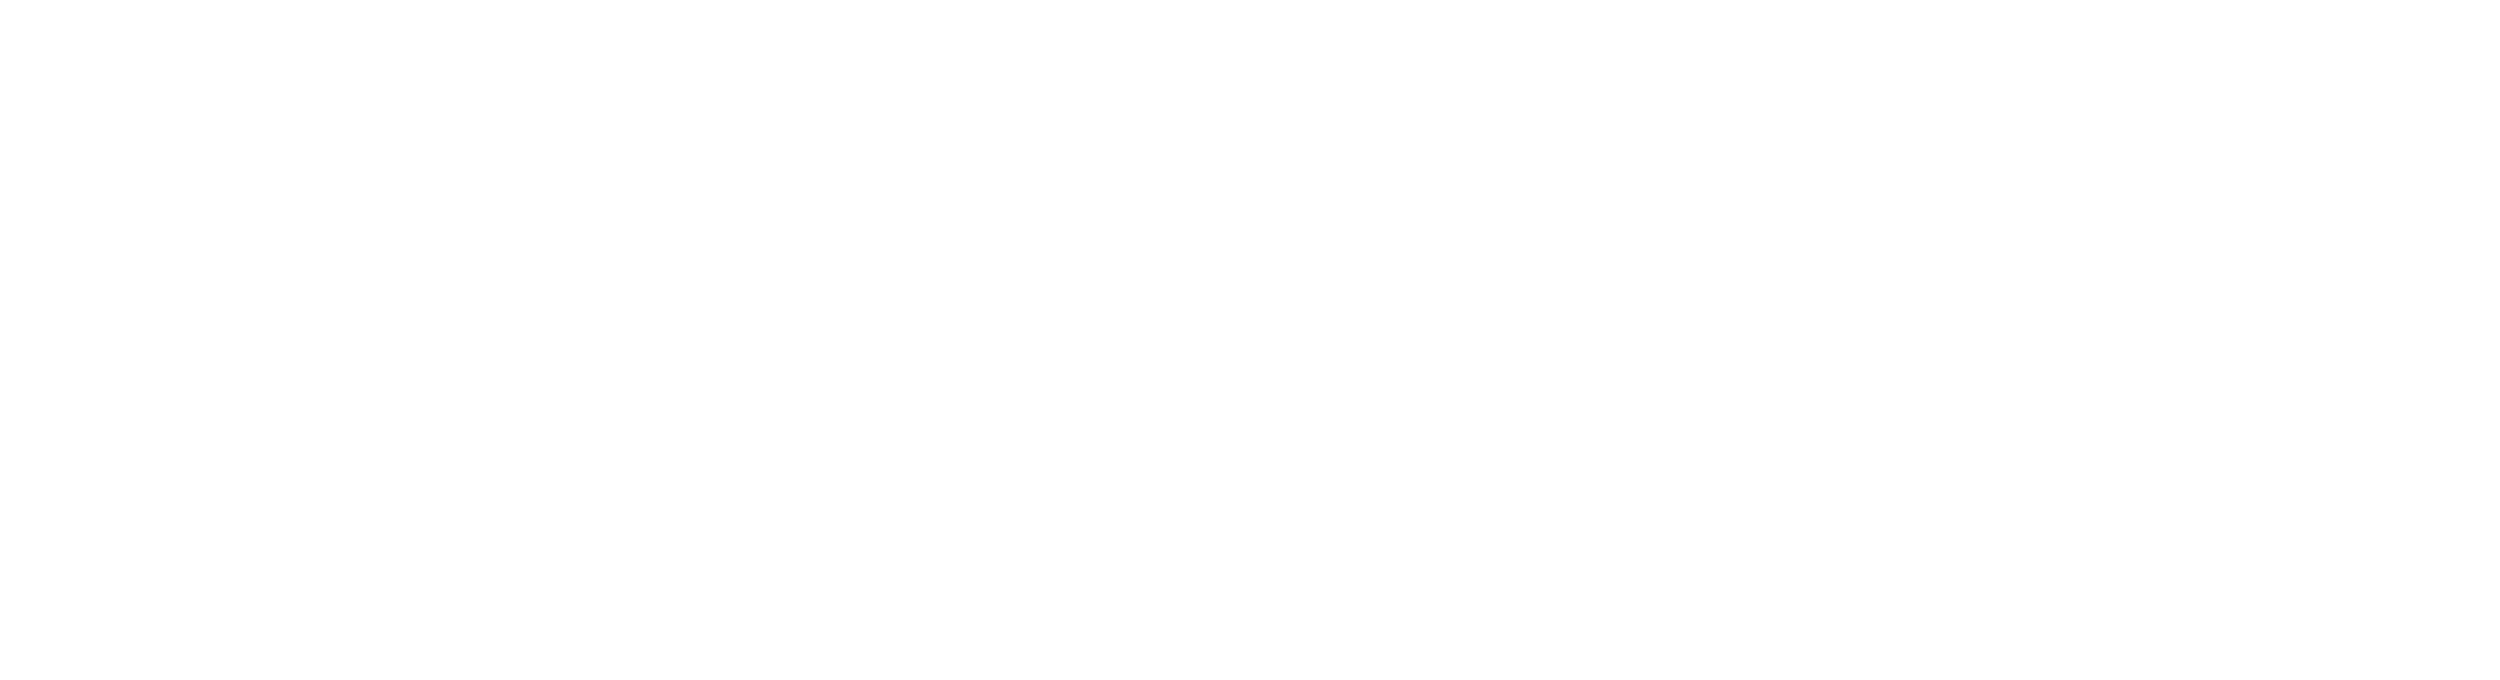 RE/MAX Alliance & Pro-Commercial